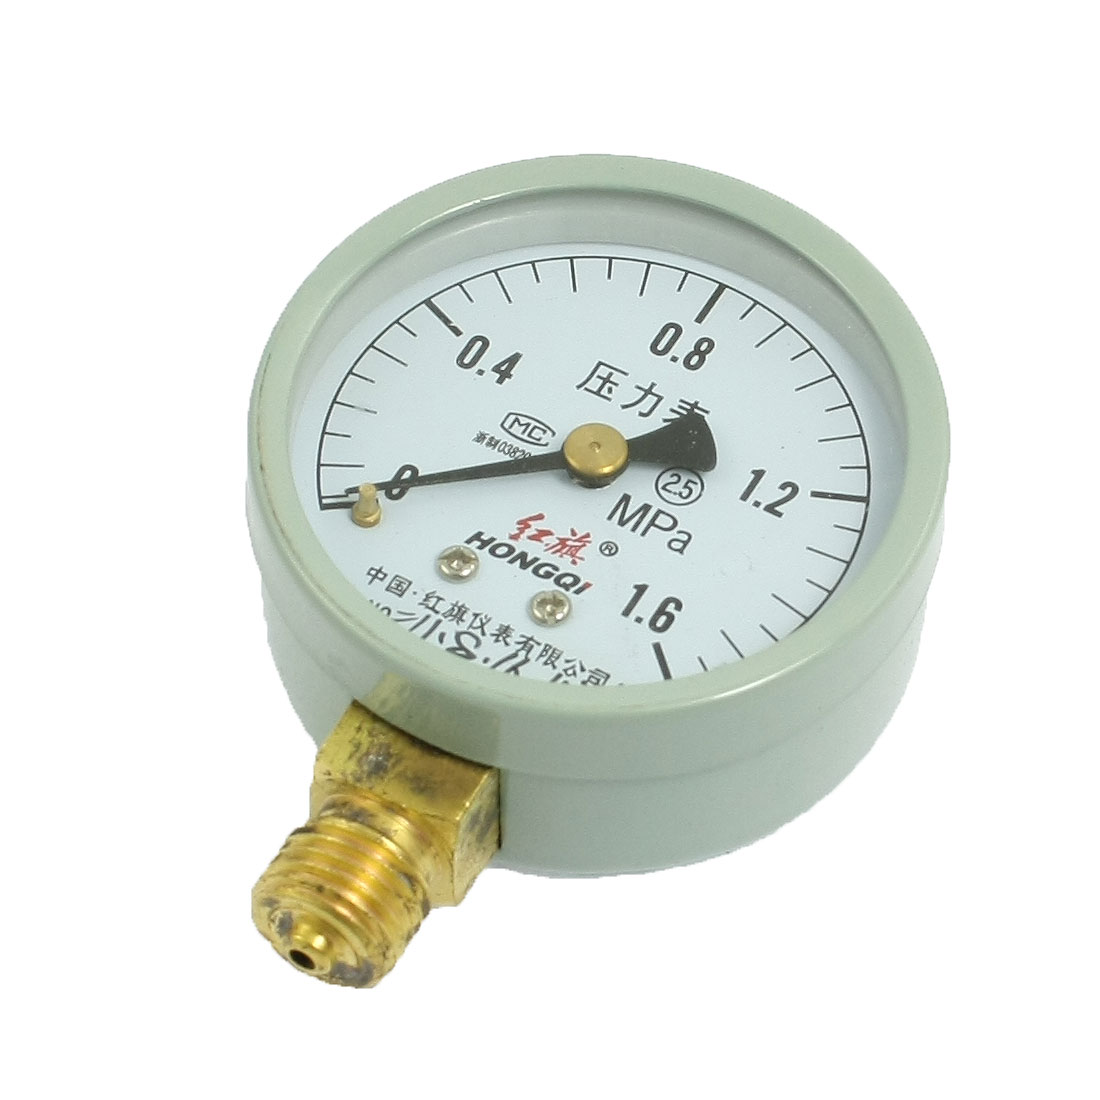 "Class 2.5 0-1.6Mpa Horizontal Air Pressure Gauge 1/4"" Thread"